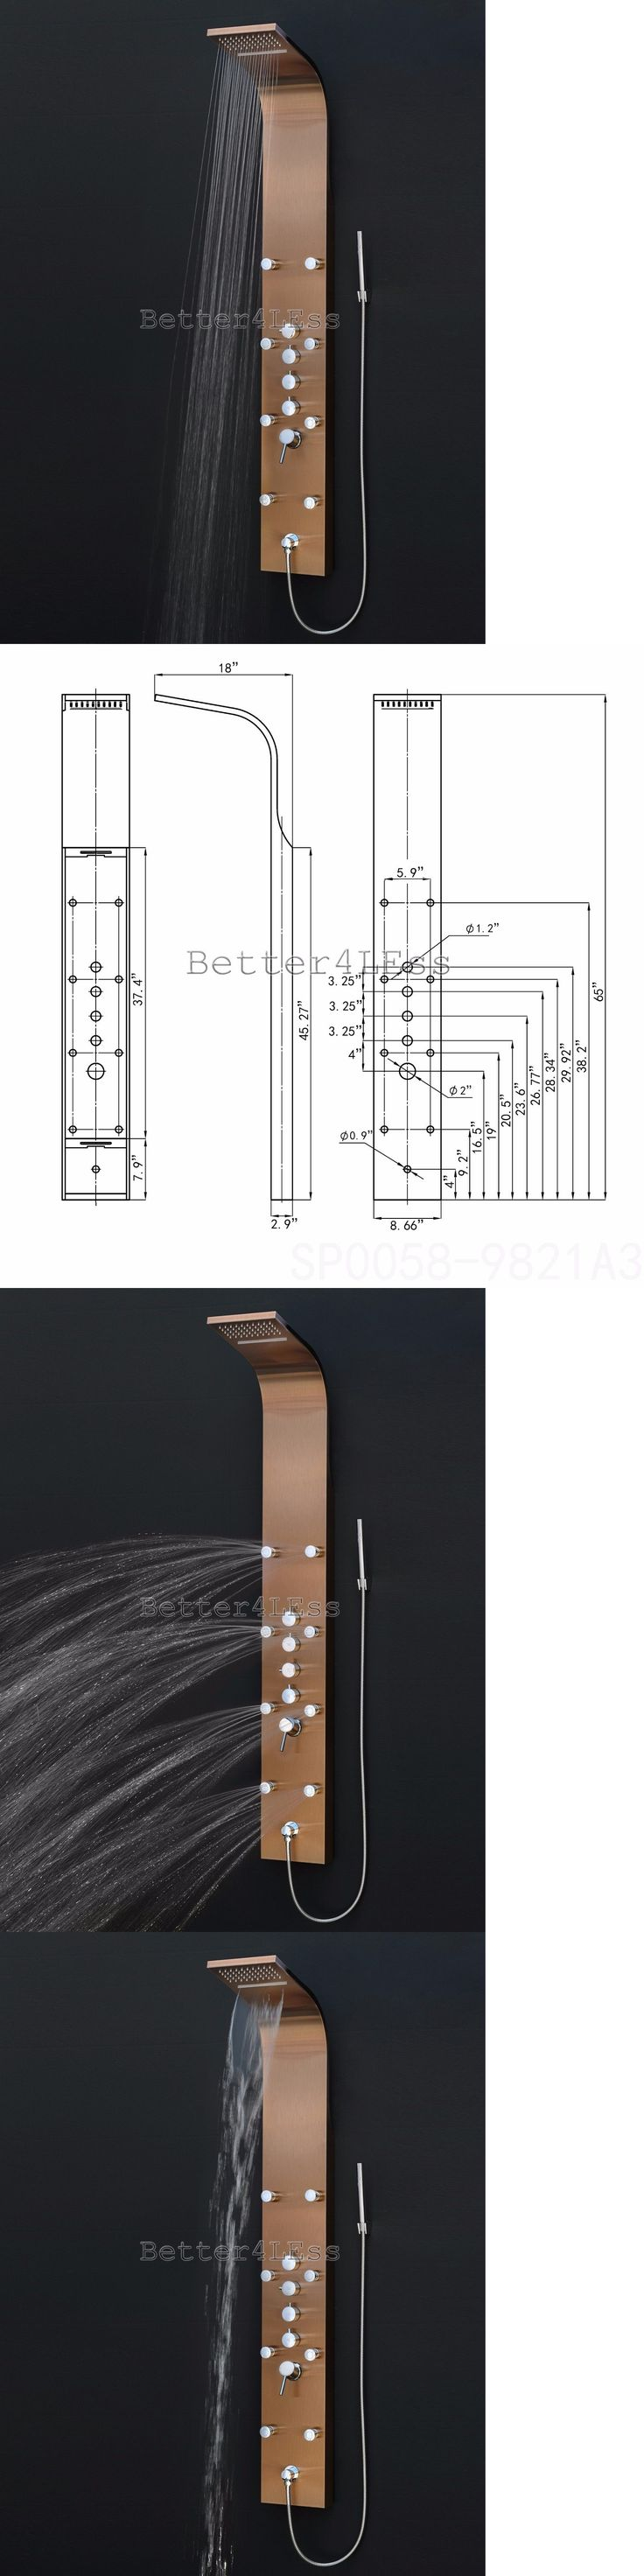 Massagers: Stainless Steel Shower Tower Panel Rainfall Waterfall Shower Head Bronze Finish -> BUY IT NOW ONLY: $249.99 on eBay!